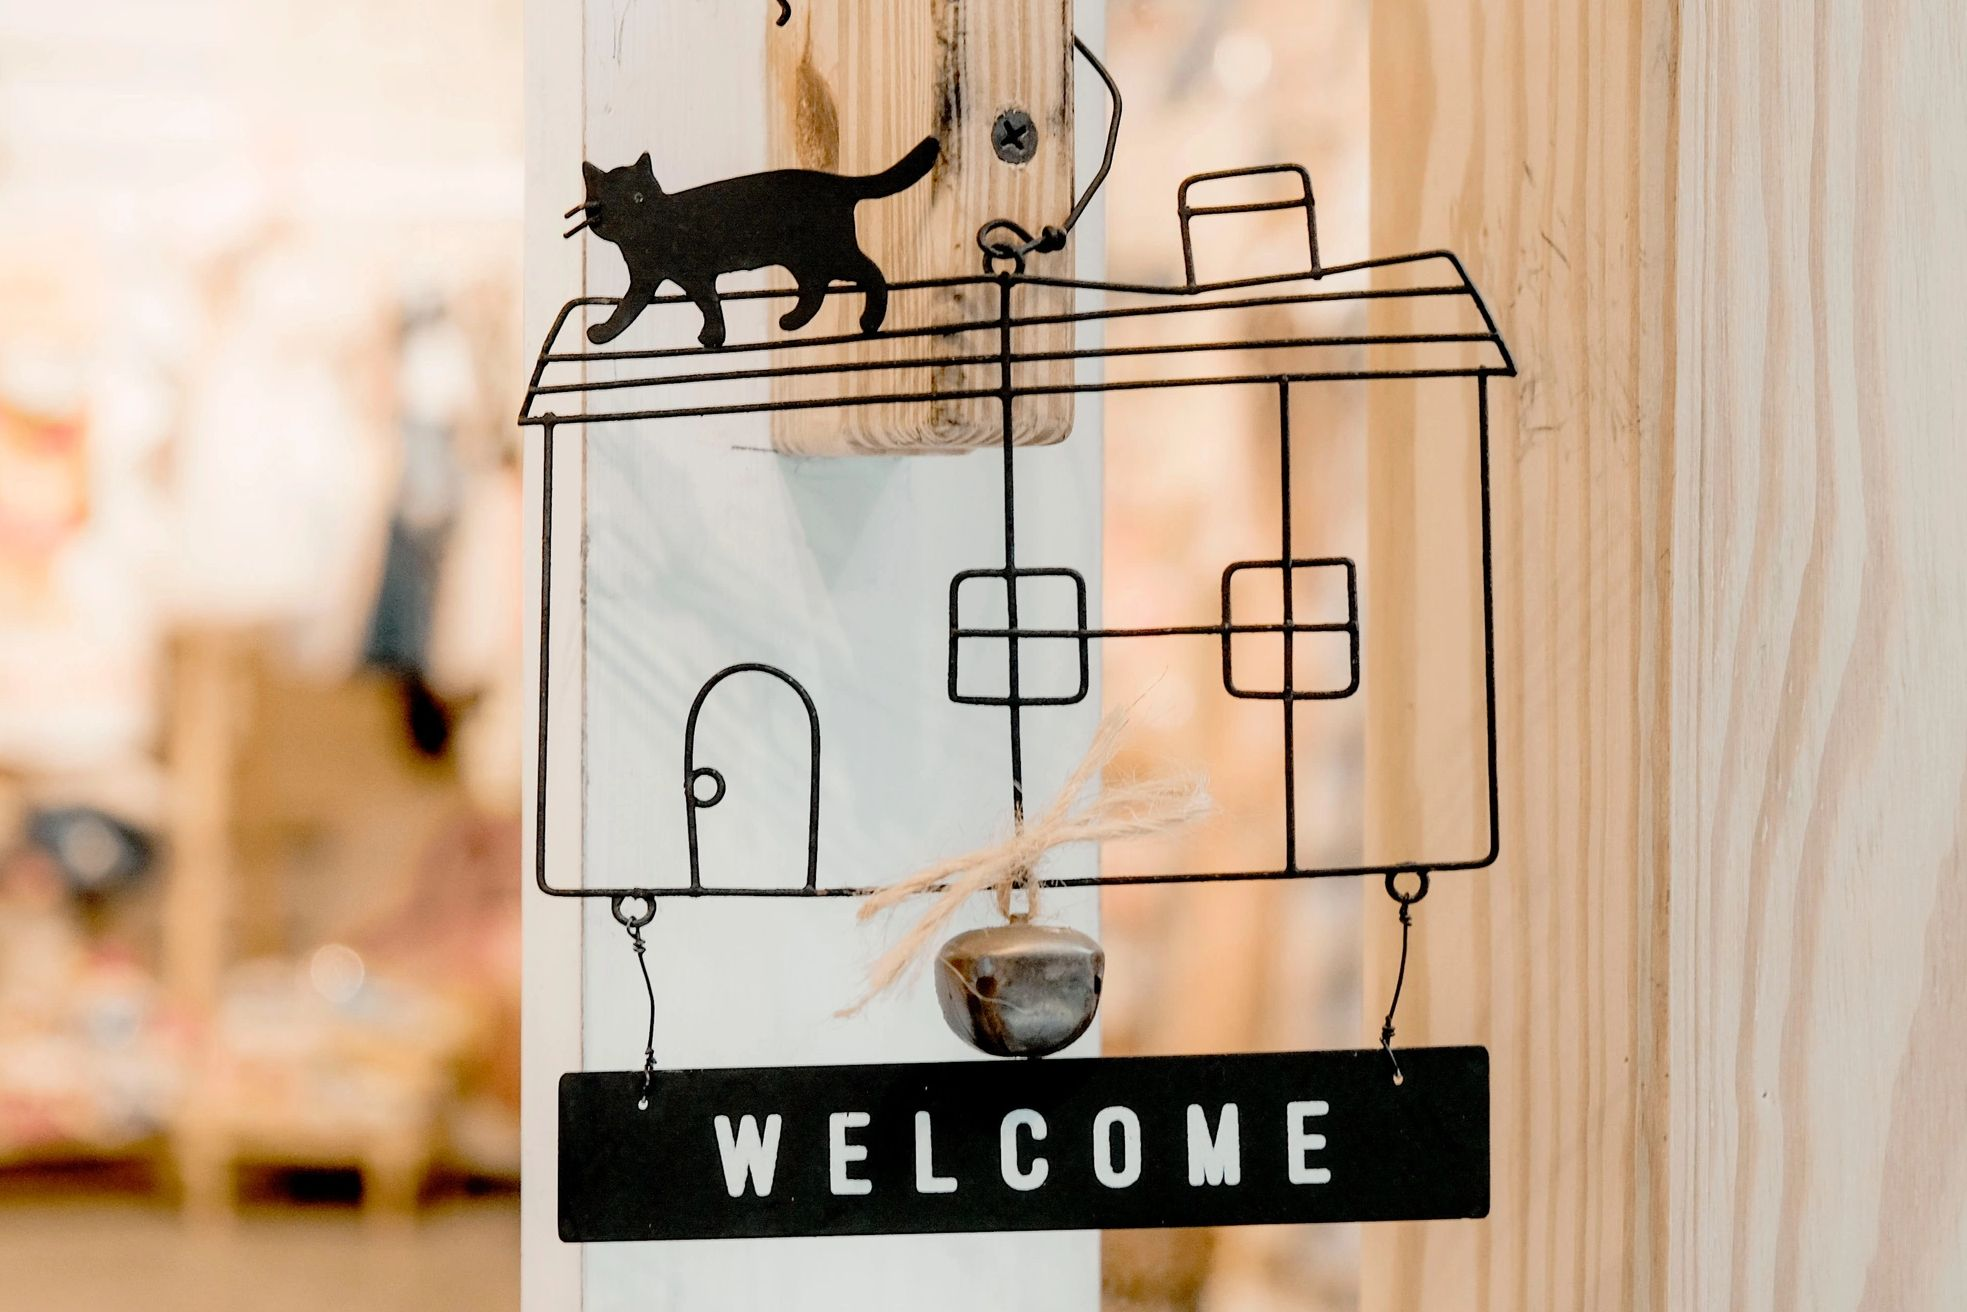 Photo by Henry & Co. from Pexels Welcome hanging sign